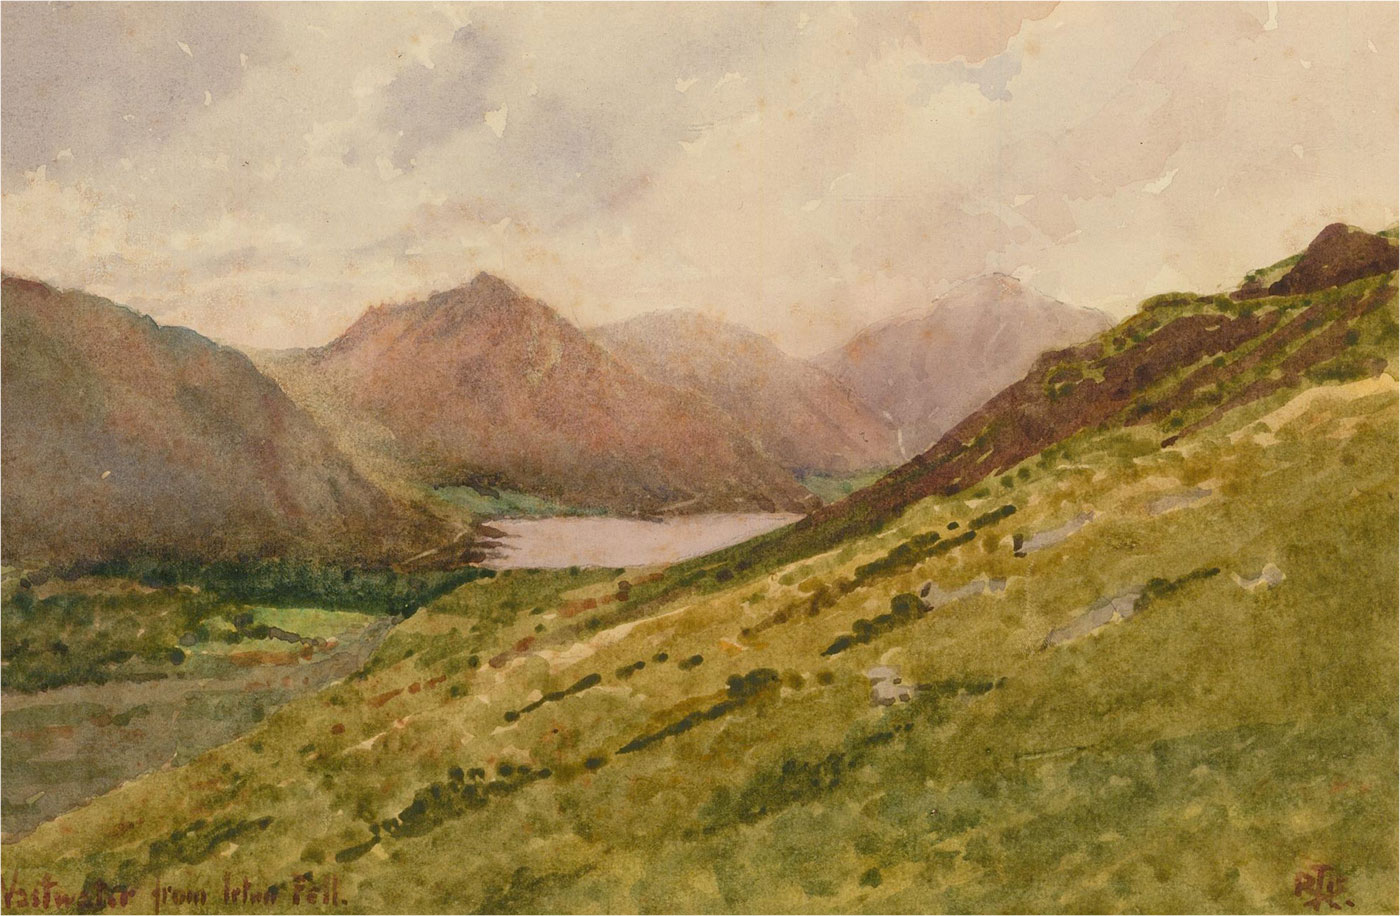 Raymond Turner Barker (1872-1945) - Early 20th Century Watercolour, Wastwater